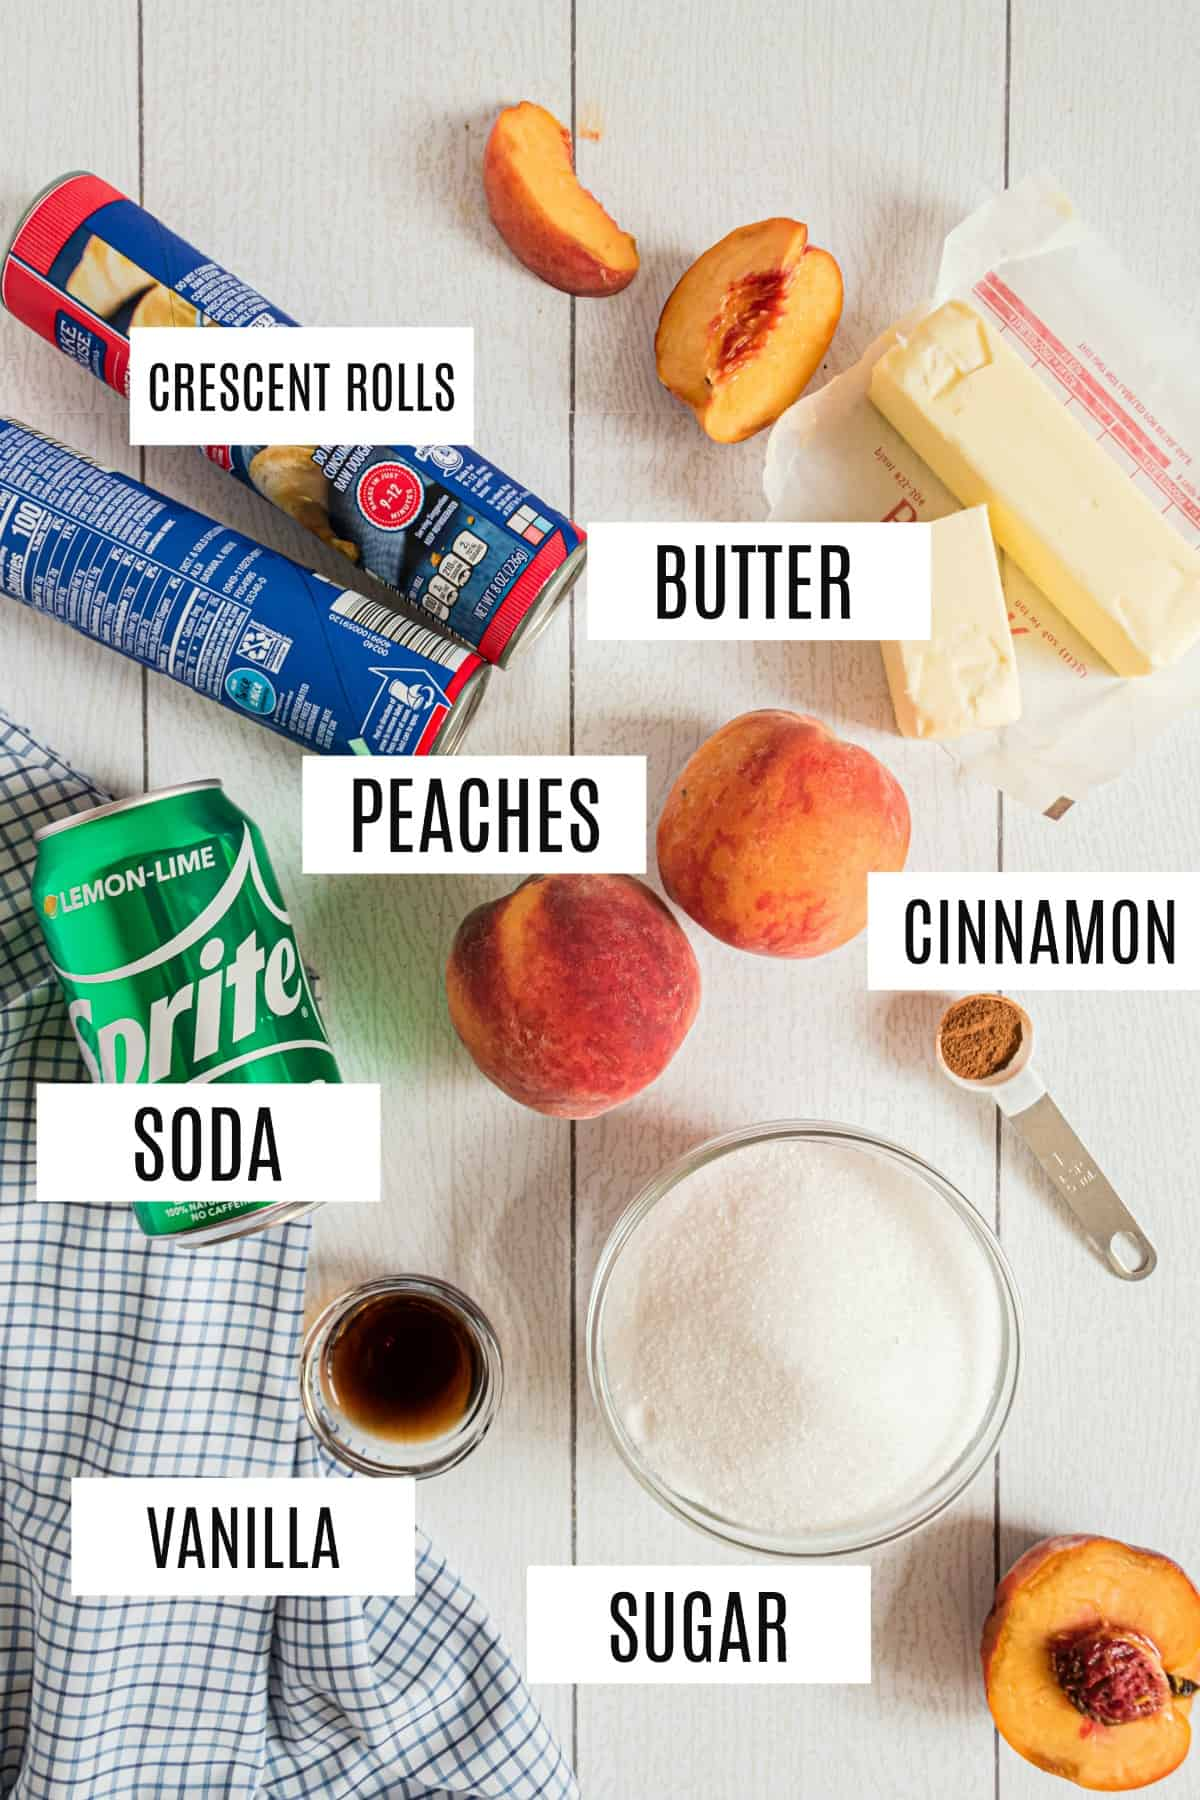 Ingredients needed for peach dumplings included fresh peaches, crescent rolls, and Sprite.